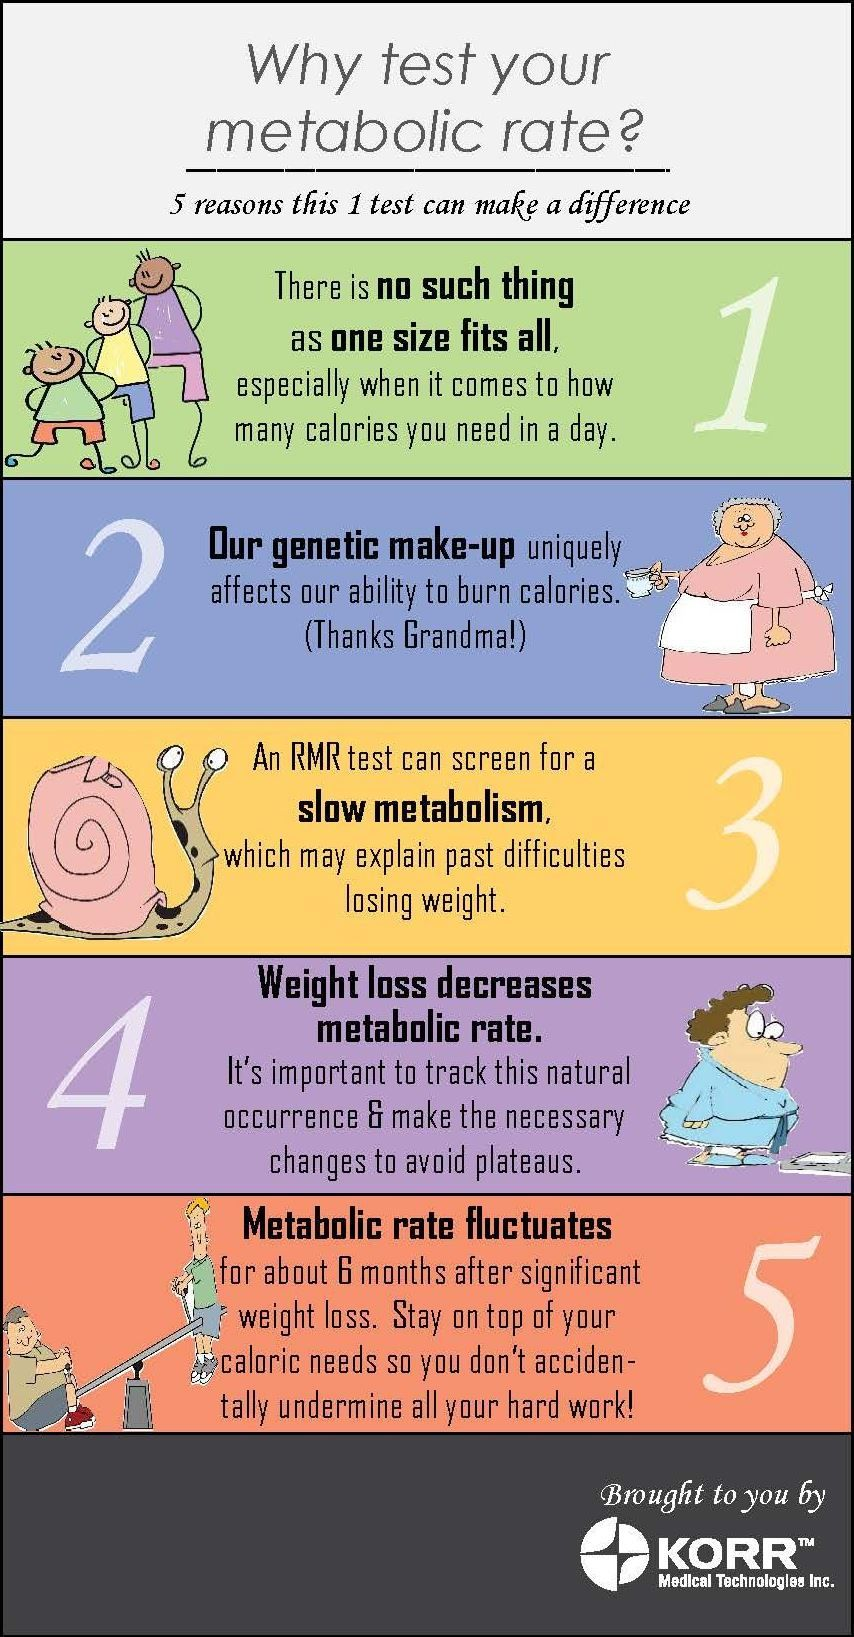 Why test your metabolic rate?